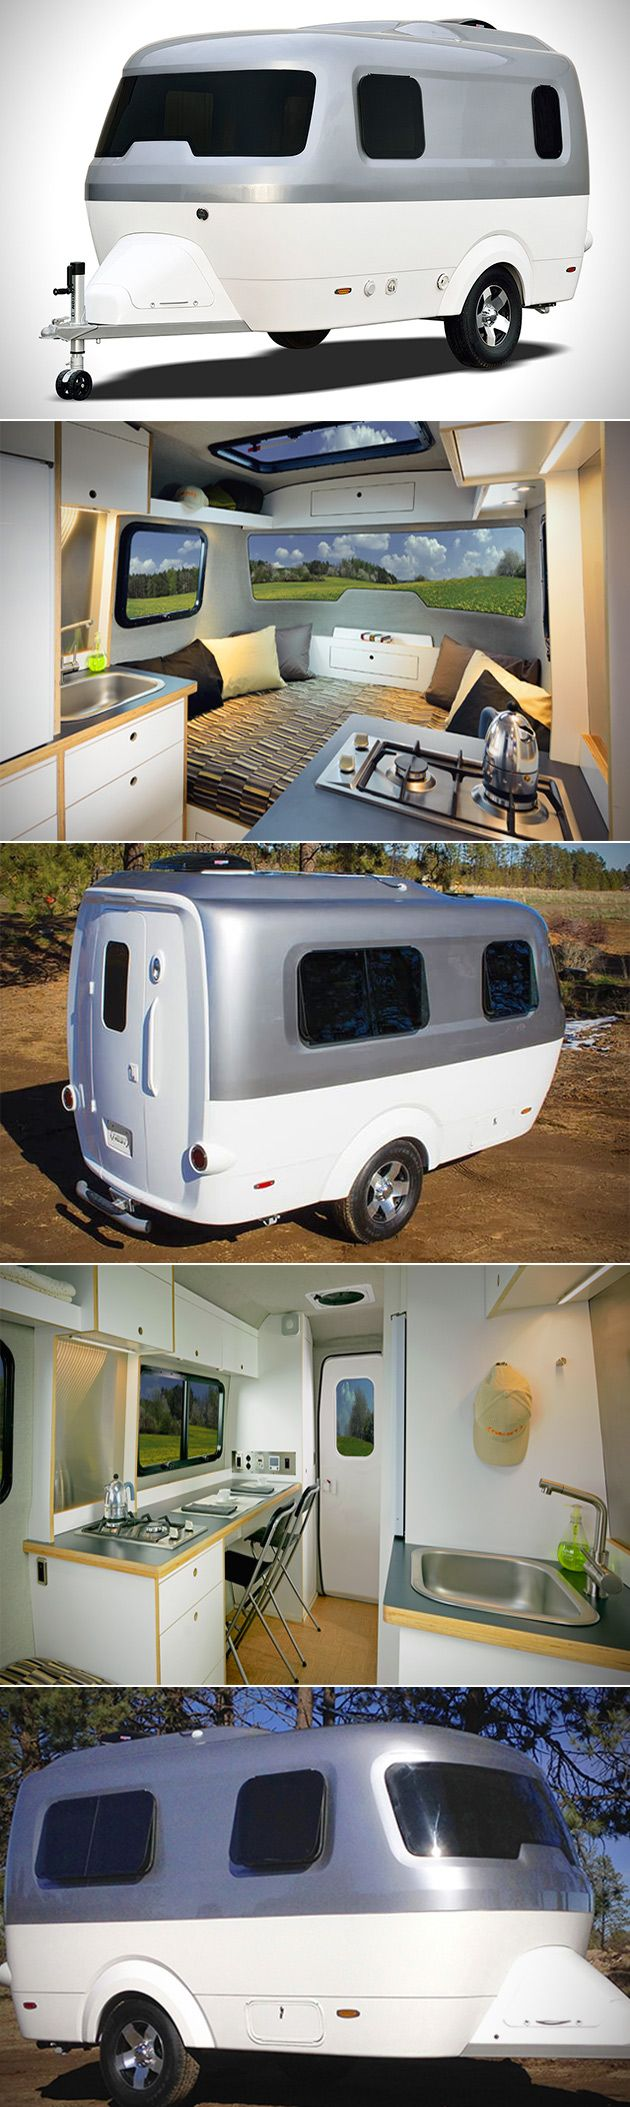 airstream nest | Airstream Nest Has a Kitchen, Work Area, Bed and is Literally a Tiny ...